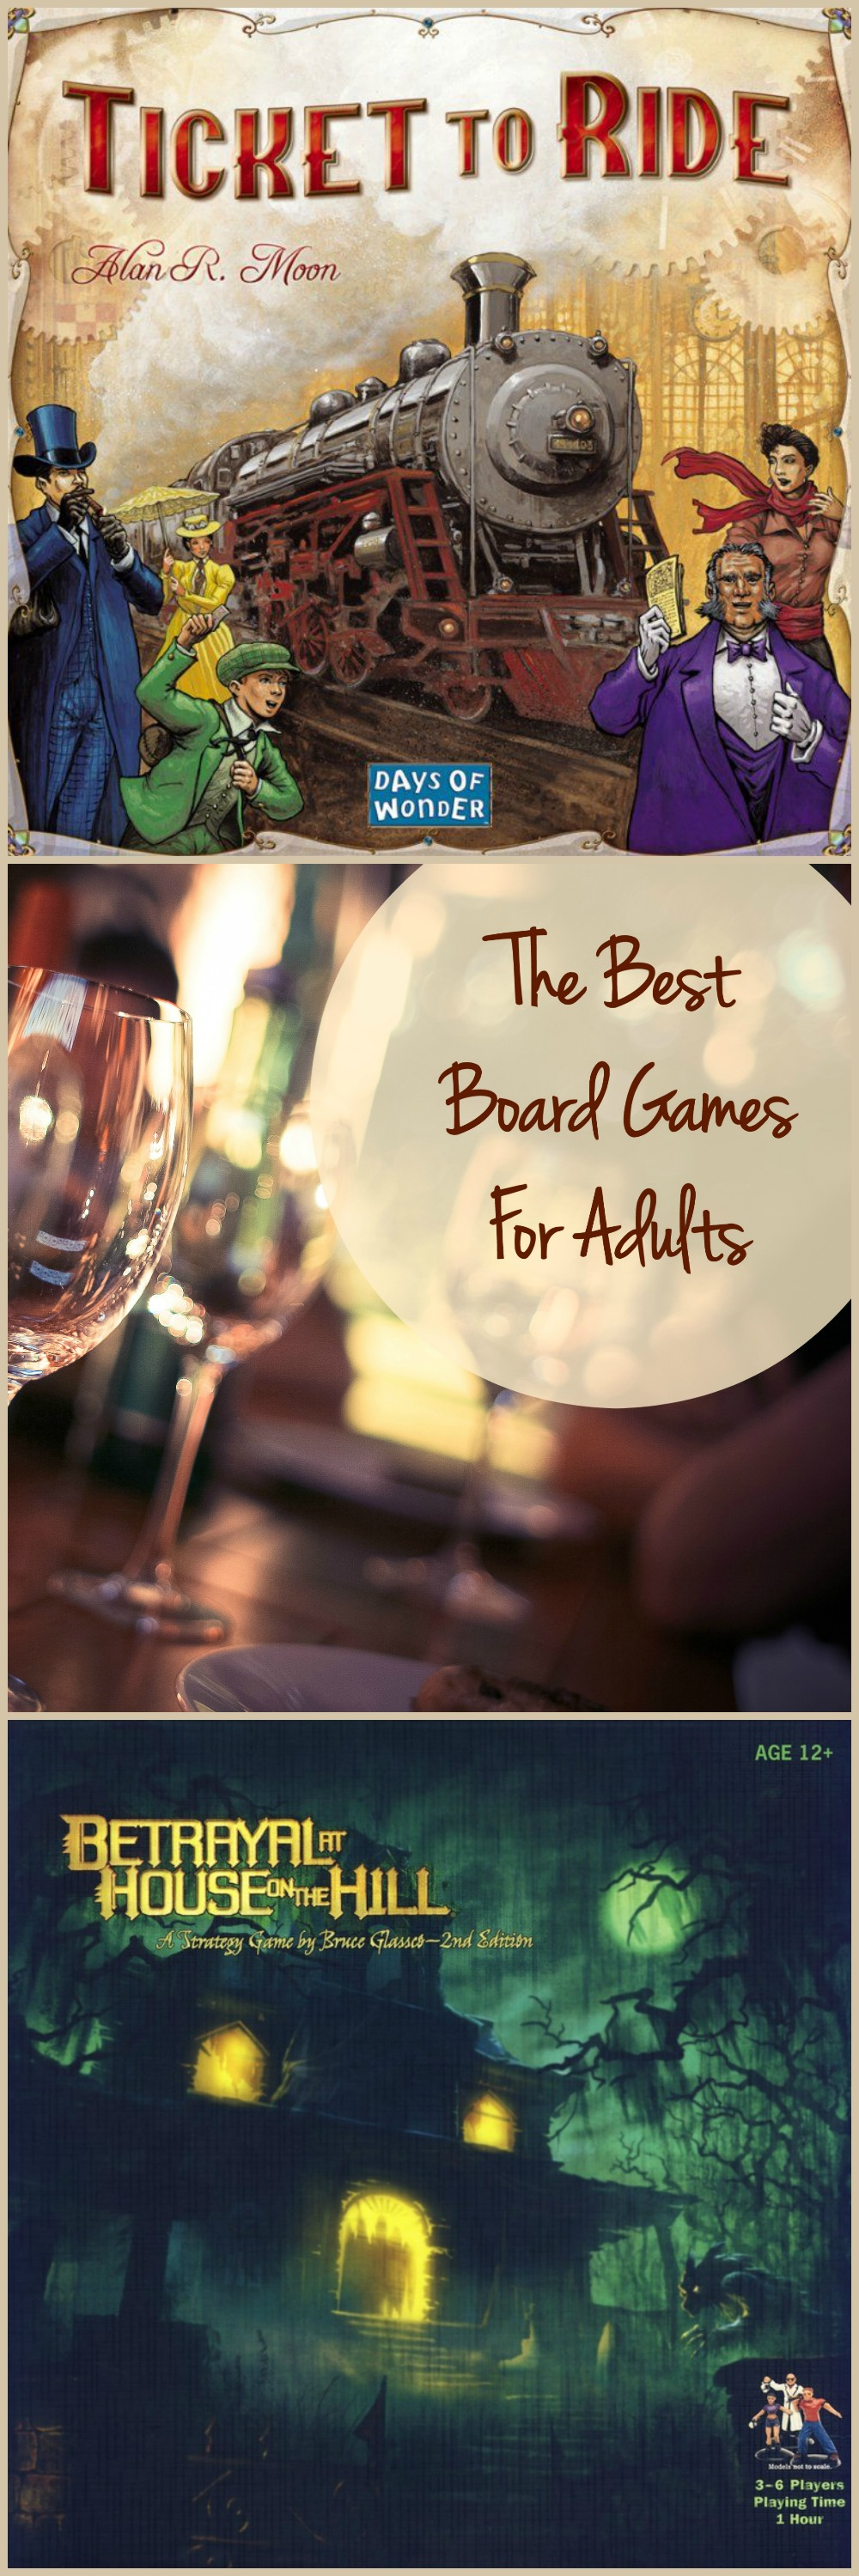 Board games are fun, low-cost way to spend time with friends and family--and I've got recommendations for the some of the best board games out there beyond the classics you already know and love.